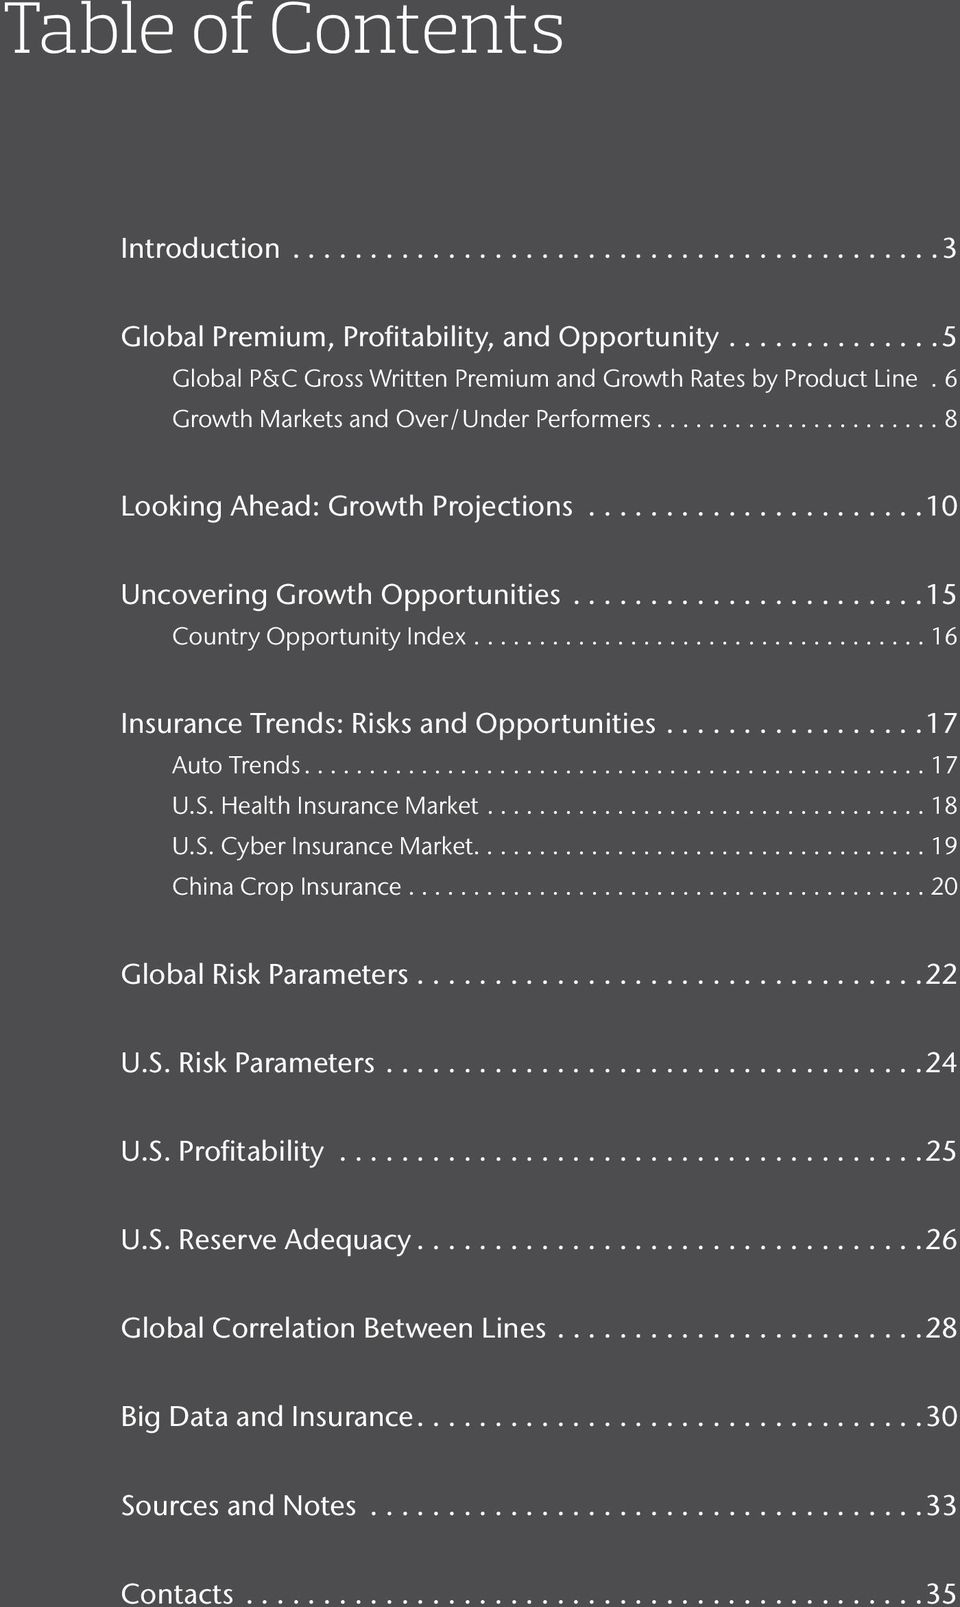 ...16 Insurance Trends: Risks and Opportunities...17 Auto Trends....17 U.S. Health Insurance Market....18 U.S. Cyber Insurance Market....19 China Crop Insurance.